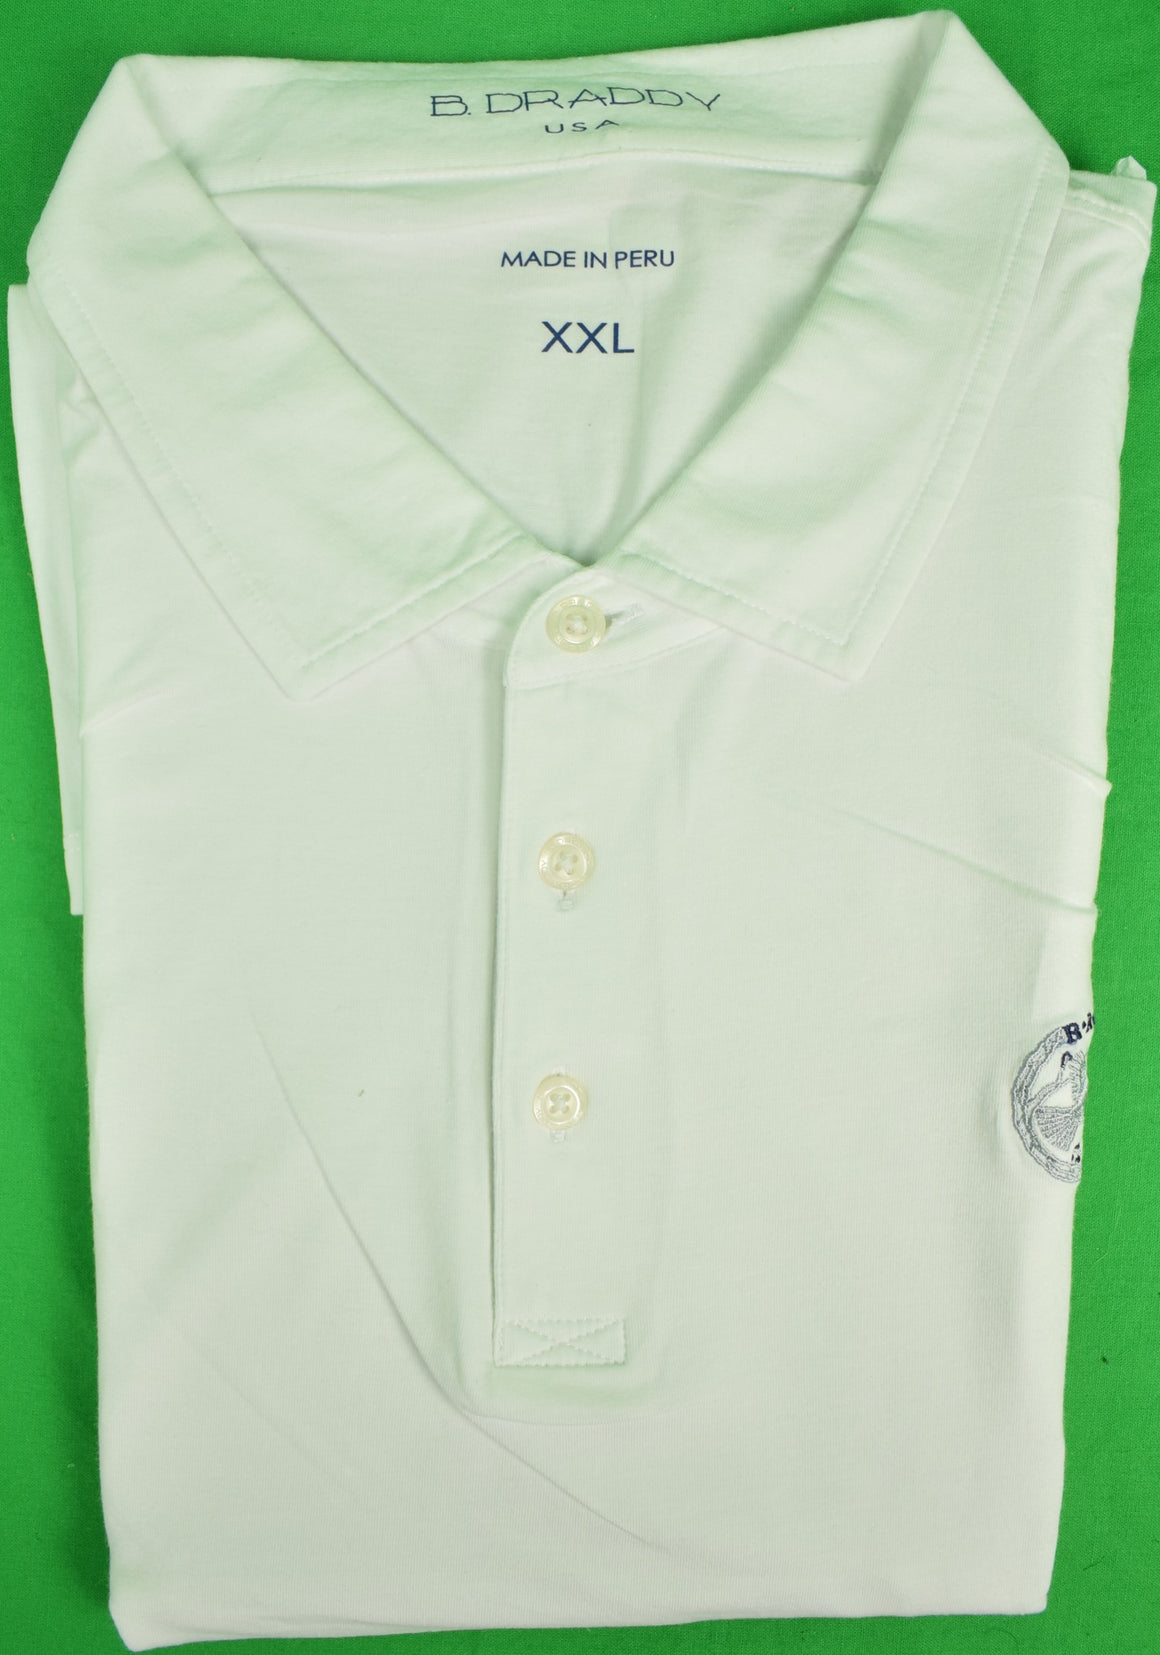 B. Draddy White Golf Shirt w/ Rolling Rock Club Logo Sz: XXL